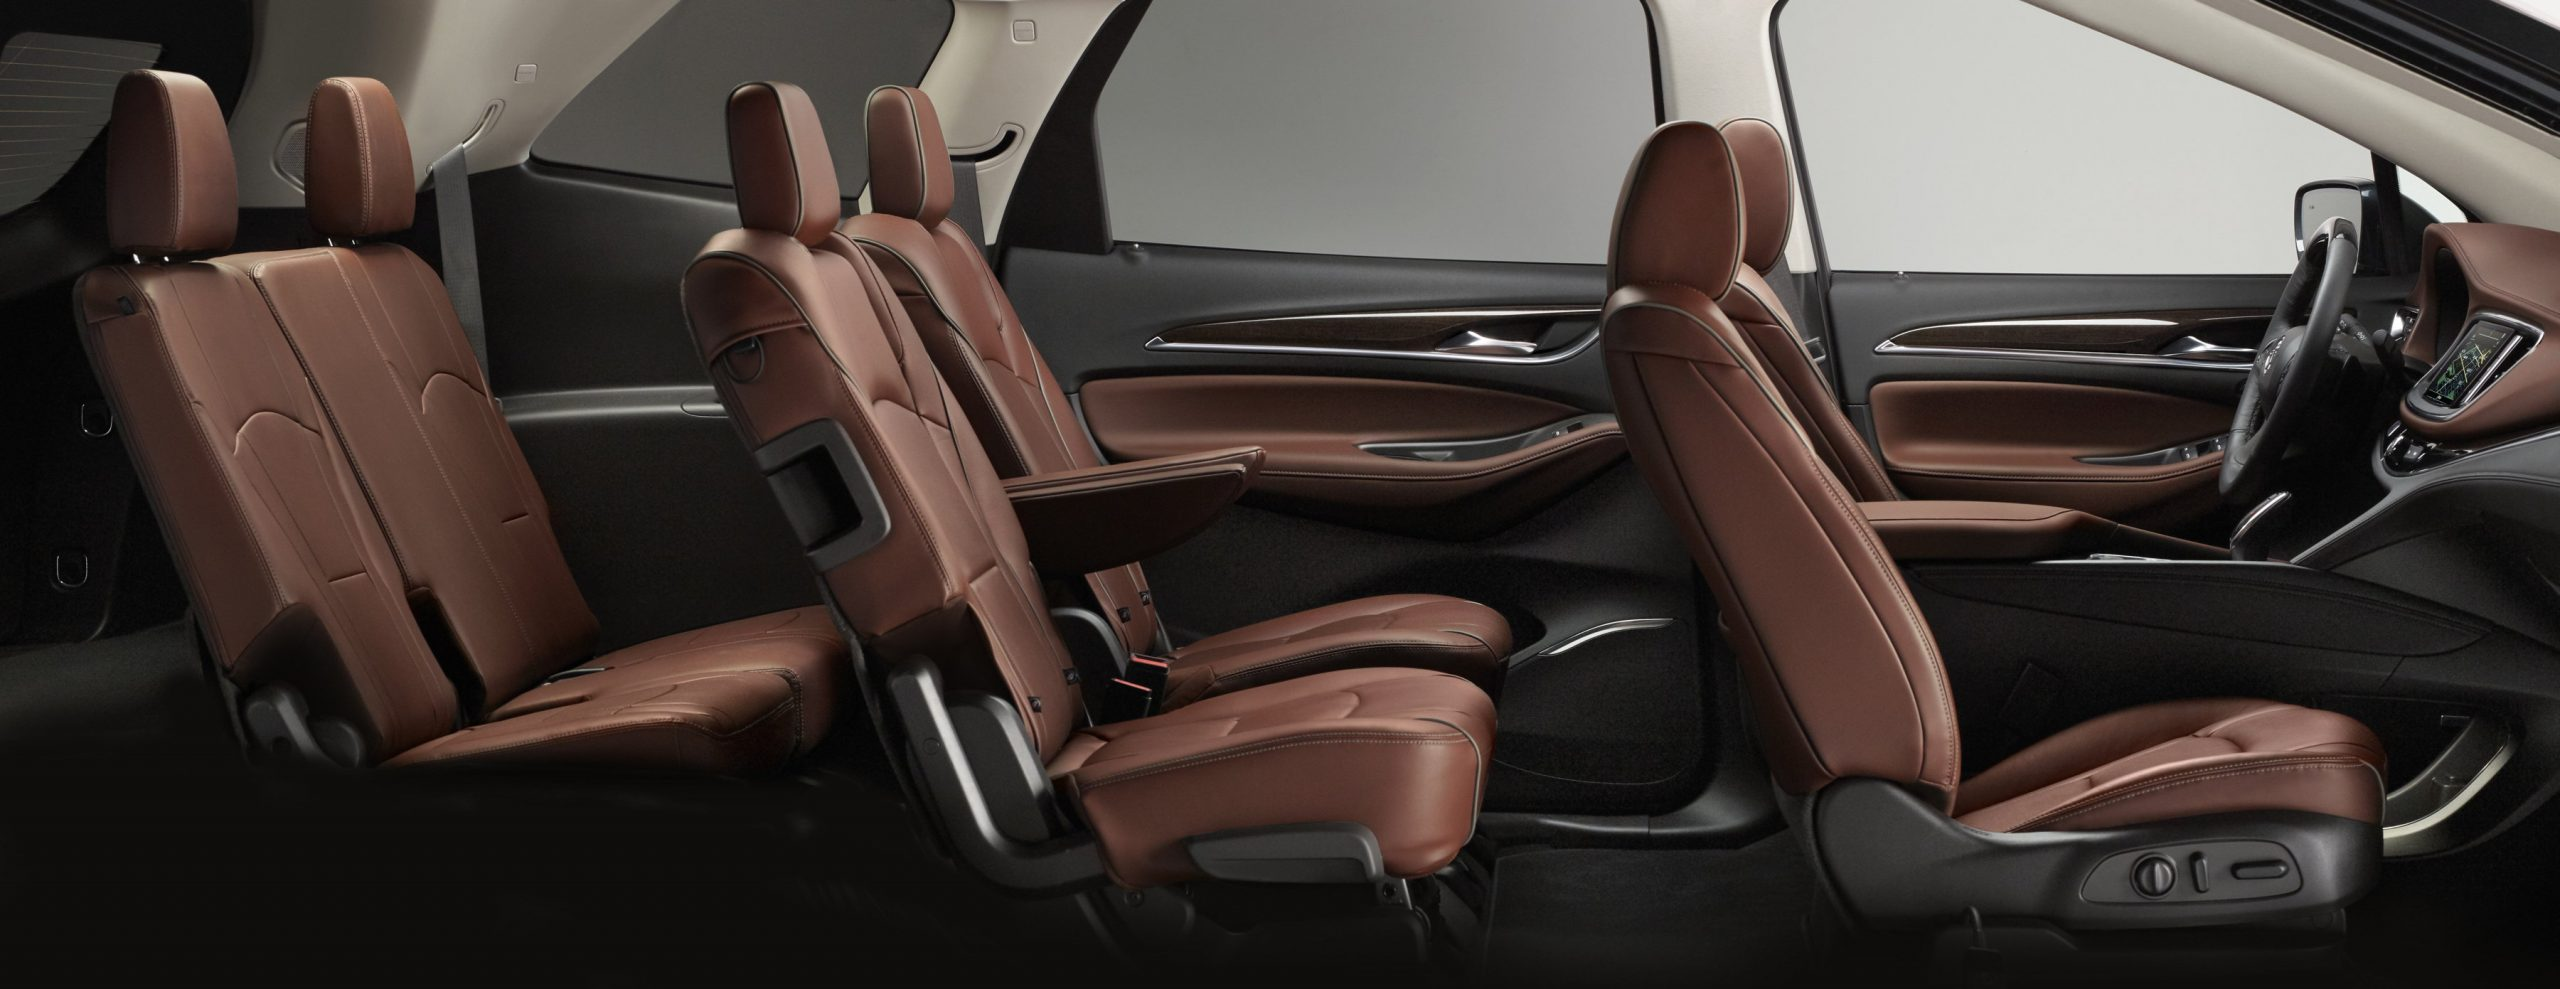 2019 Buick Enclave Interior Colors | Gm Authority 2022 Buick Enclave Avenir Exterior Colors, Interior, Awd